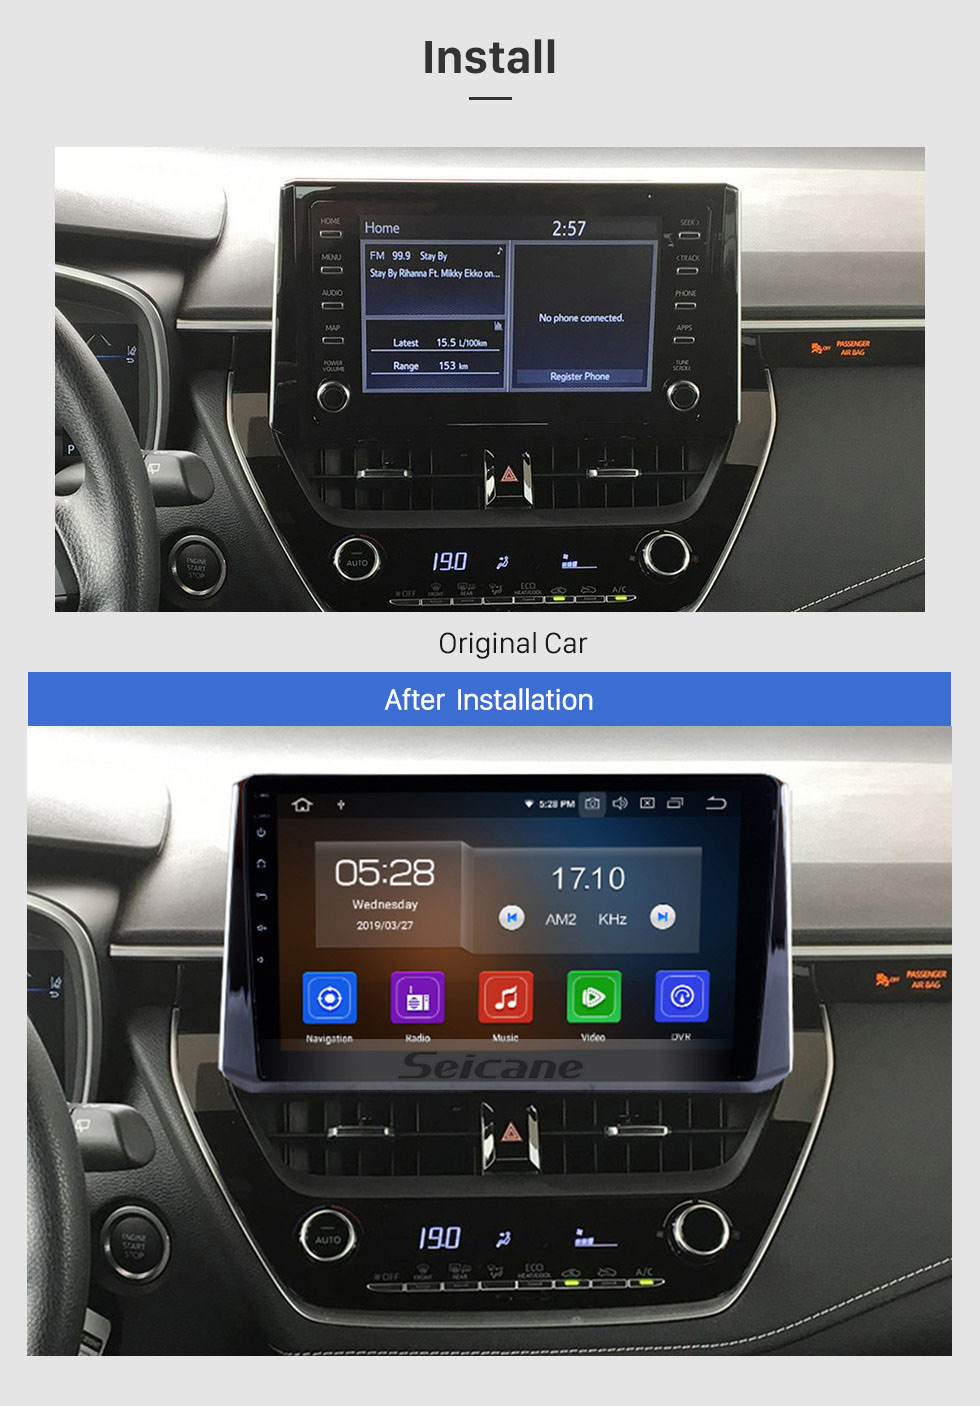 Seicane 10.1 inch GPS Navigation system Android 9.0 2019 Toyota Corolla Support Radio IPS Full Screen 3G WiFi Bluetooth OBD2 Steering Wheel Control